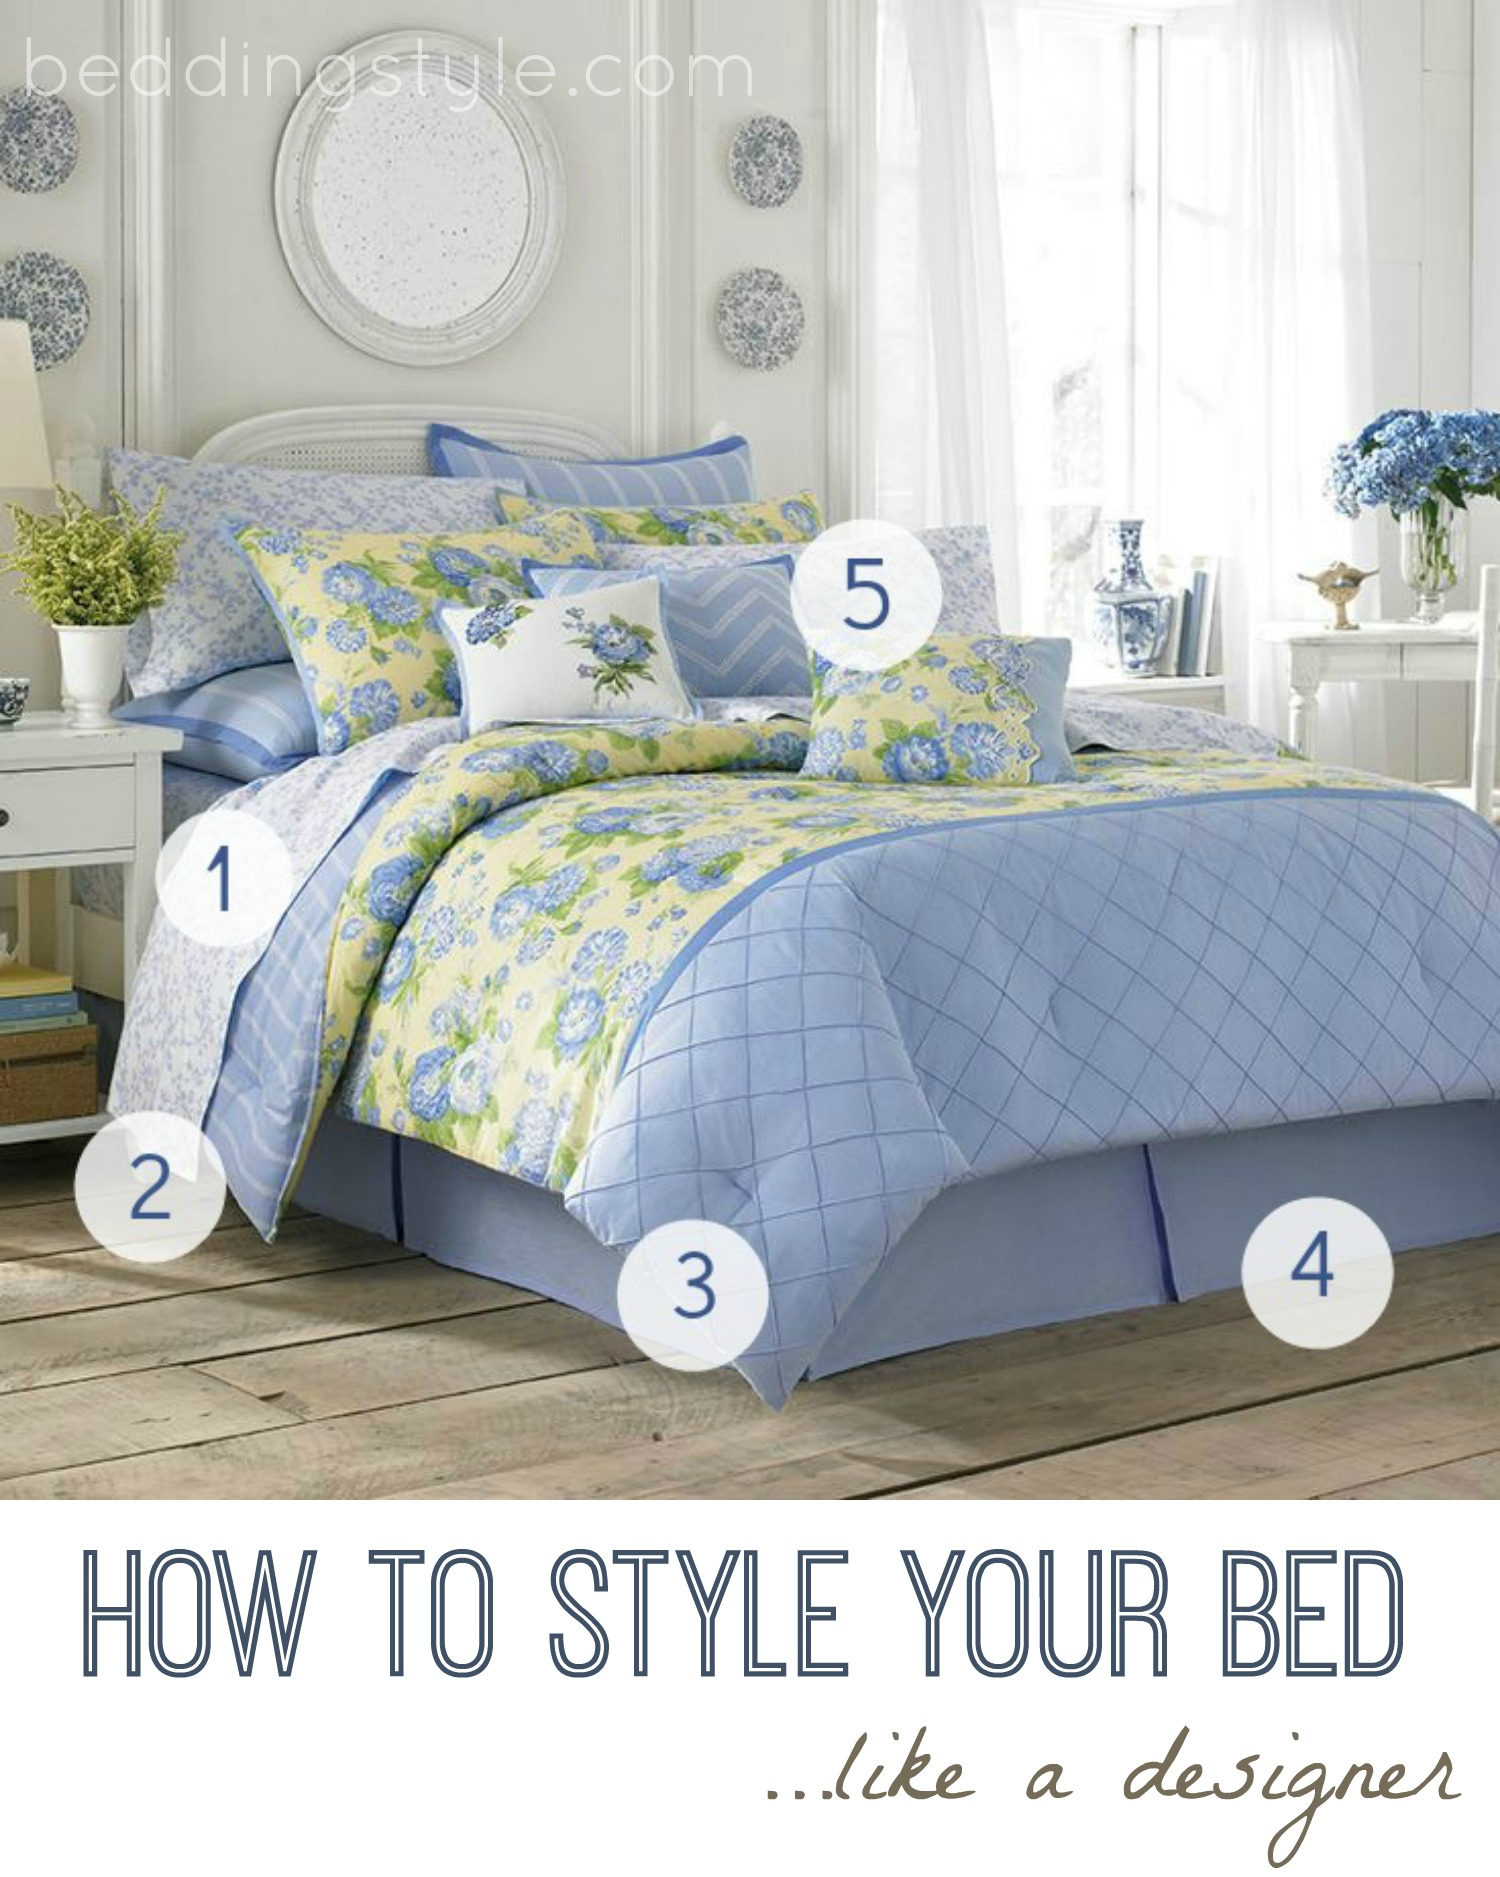 how to style your bed from